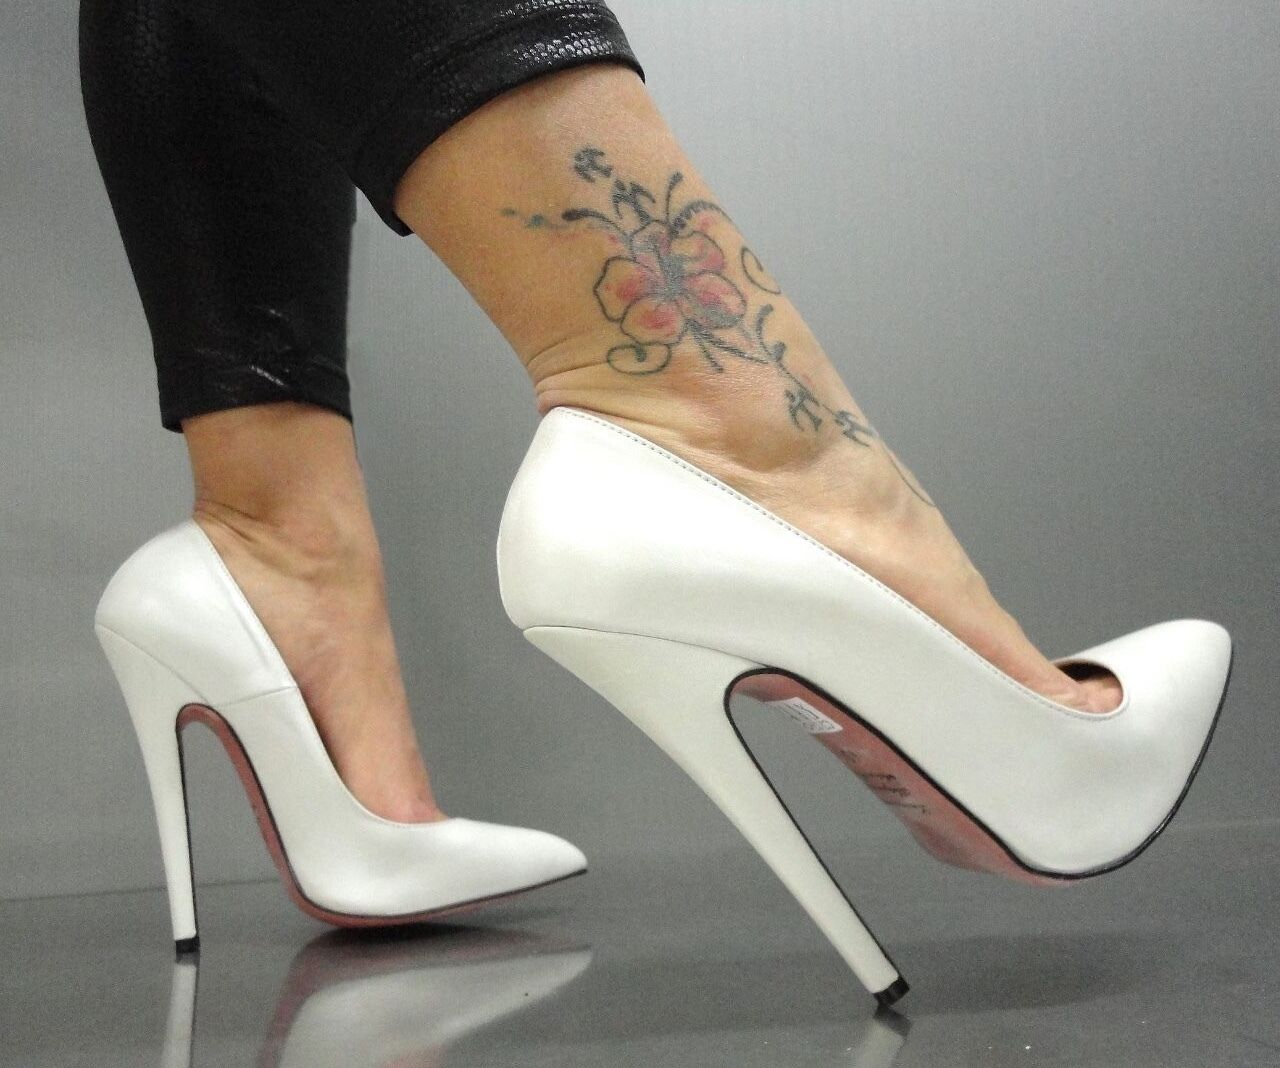 Mori made in  New High Sky Hauts Hauts Hauts Escarpins chaussures chaussures leather blanc bianco 39 0e21fc